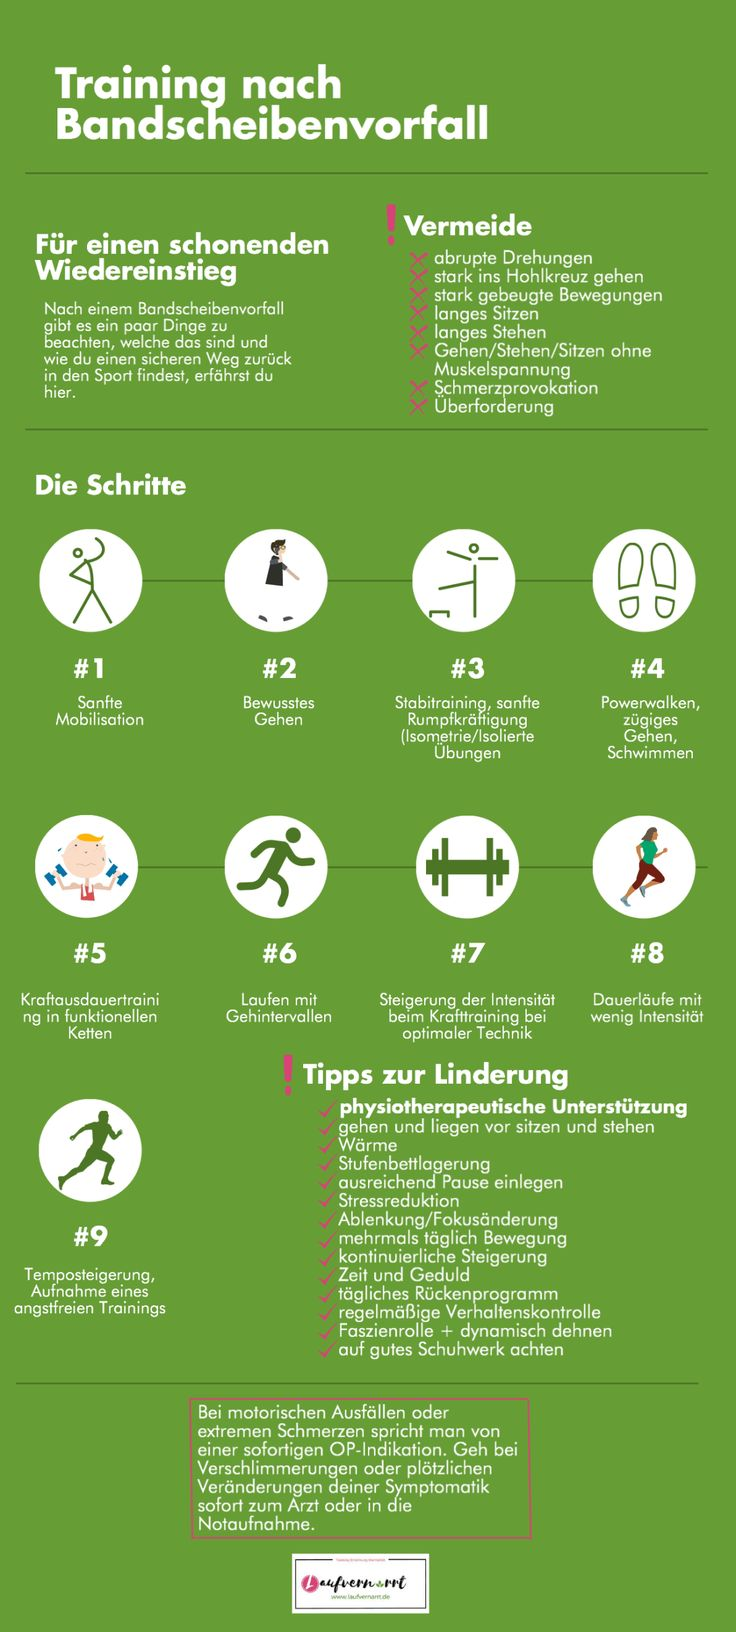 Sport and running after a herniated disc – life goes on